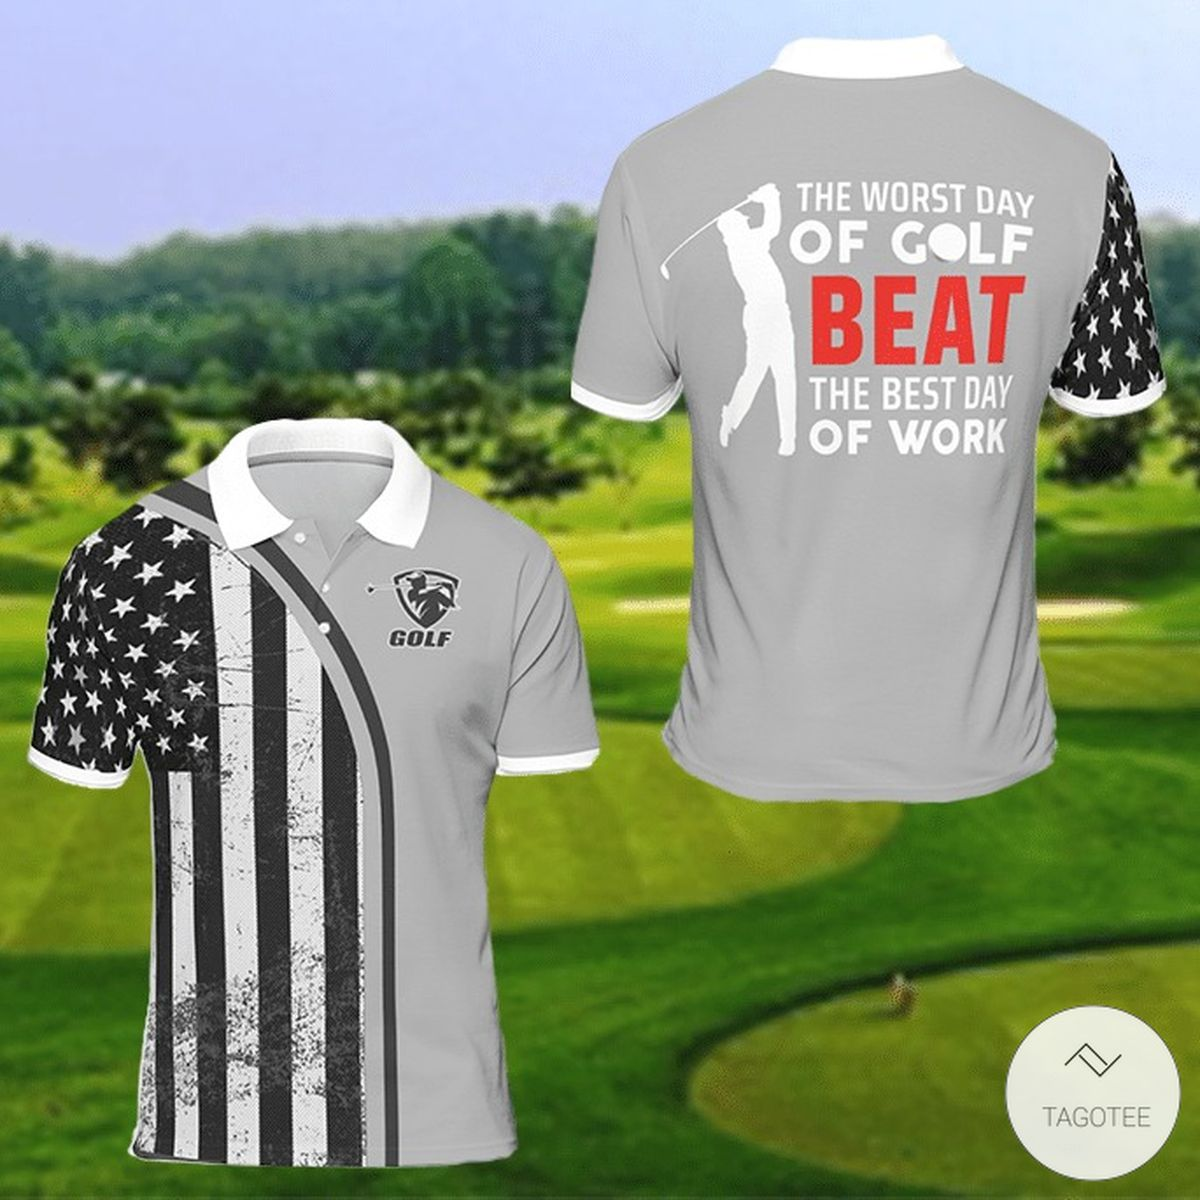 The Worst Day Of Golf Beat The Best Day Of Work Polo Shirt